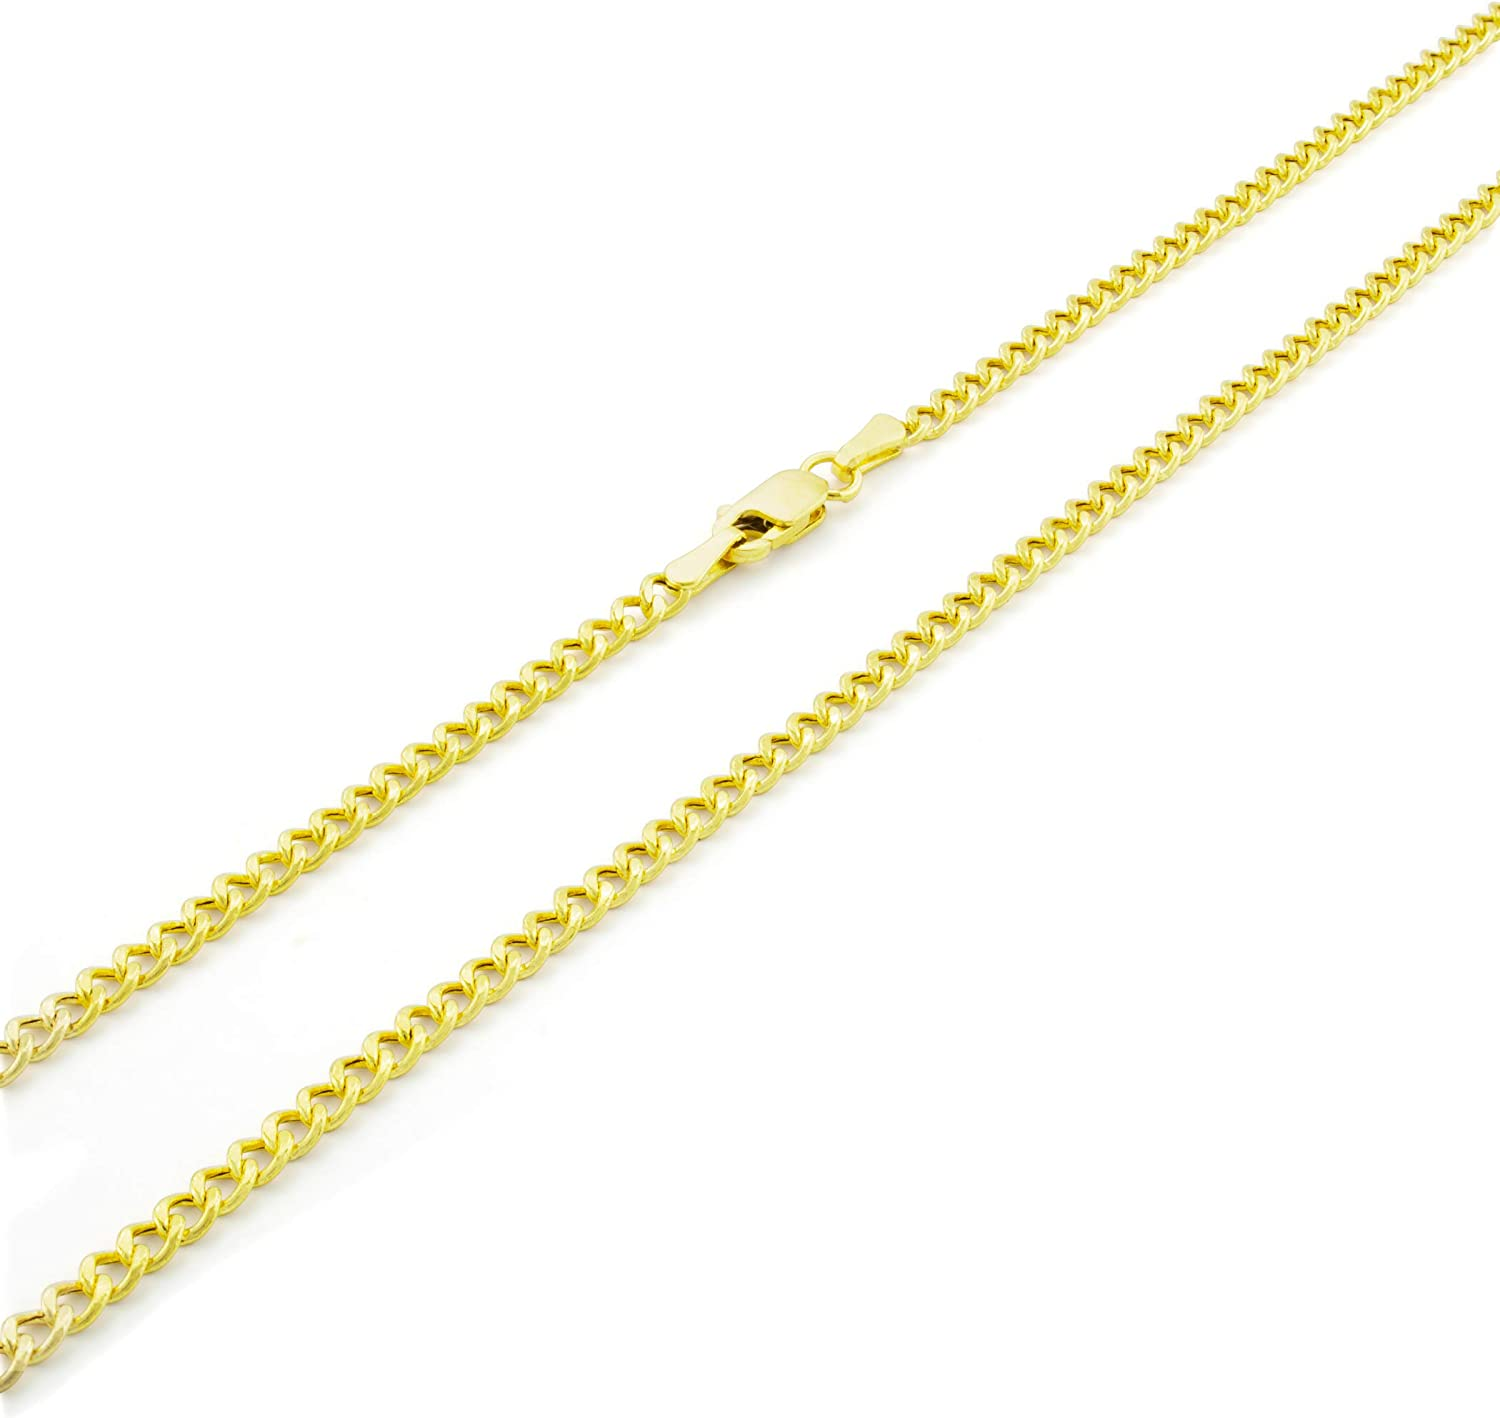 Nuragold 10k Yellow Gold 2.5mm Cuban Curb Link Chain Pendant Necklace, Mens Womens Lobster Lock 16